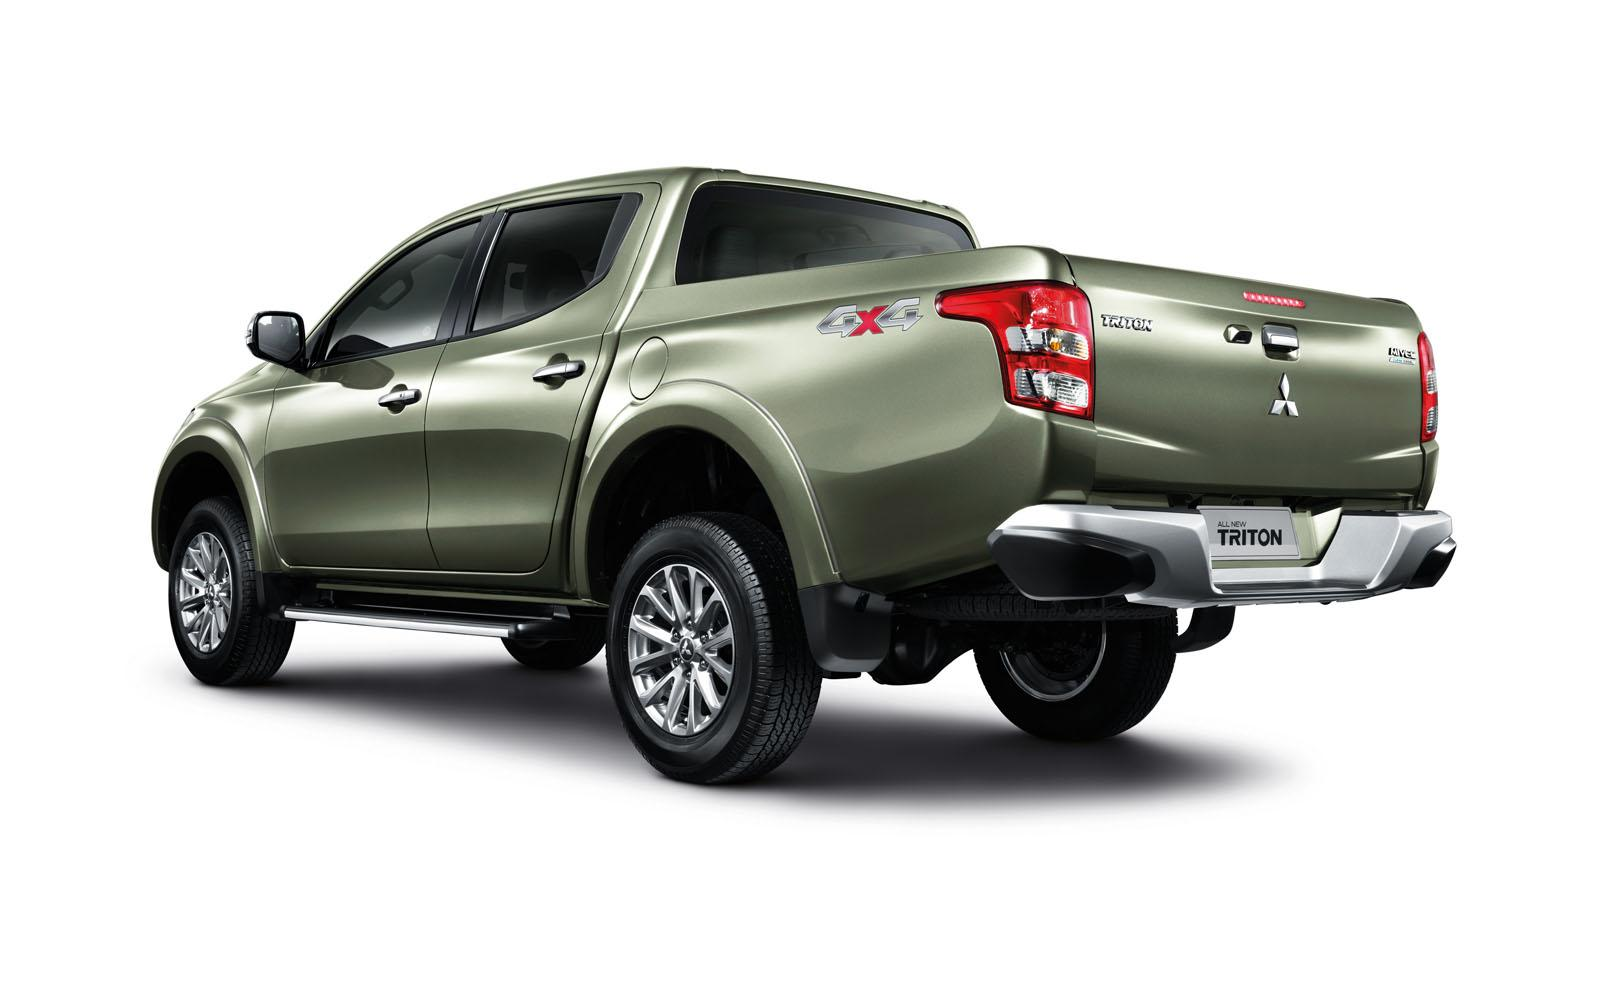 Toyota Tacoma Evolution >> 2015 Mitsubishi L200 (Euro-Spec) Slated to Bow in Geneva - autoevolution